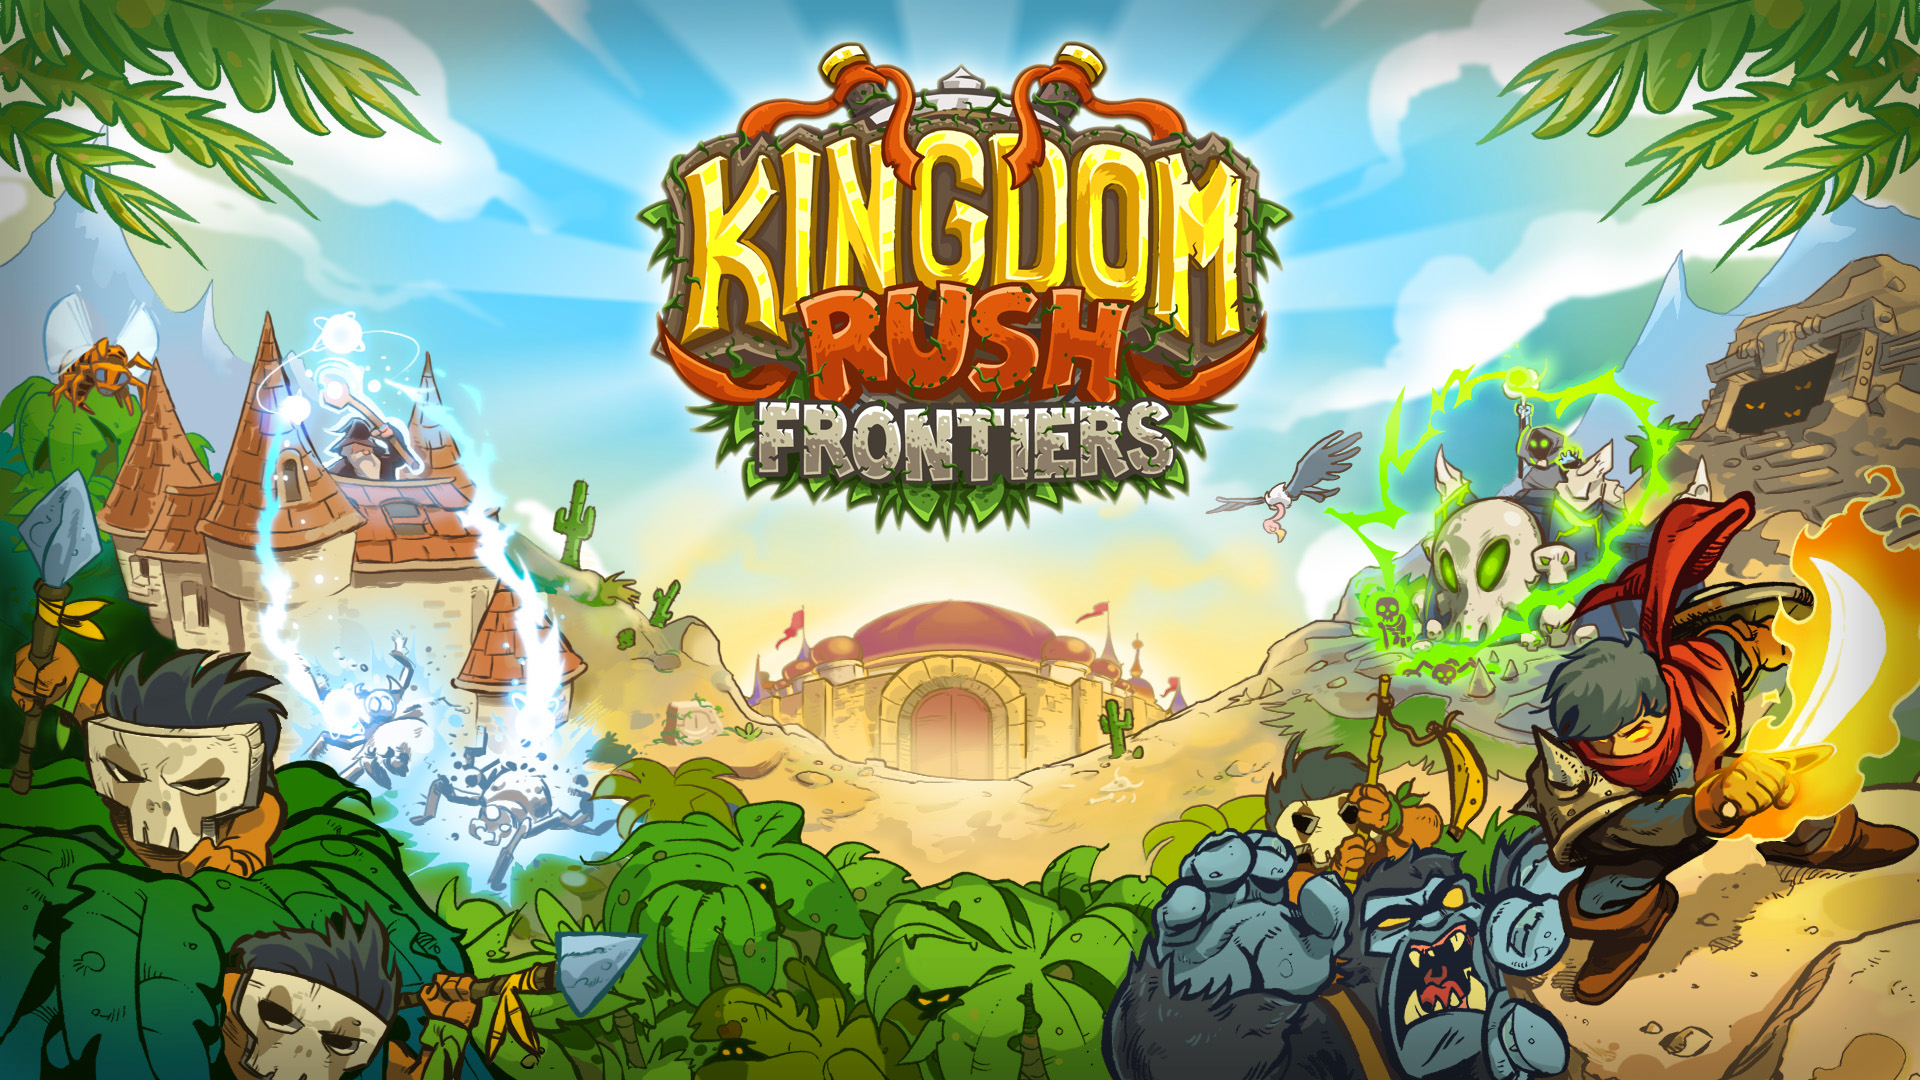 Browser-Based Kingdom Rush: Frontiers Free Today via Armor Games